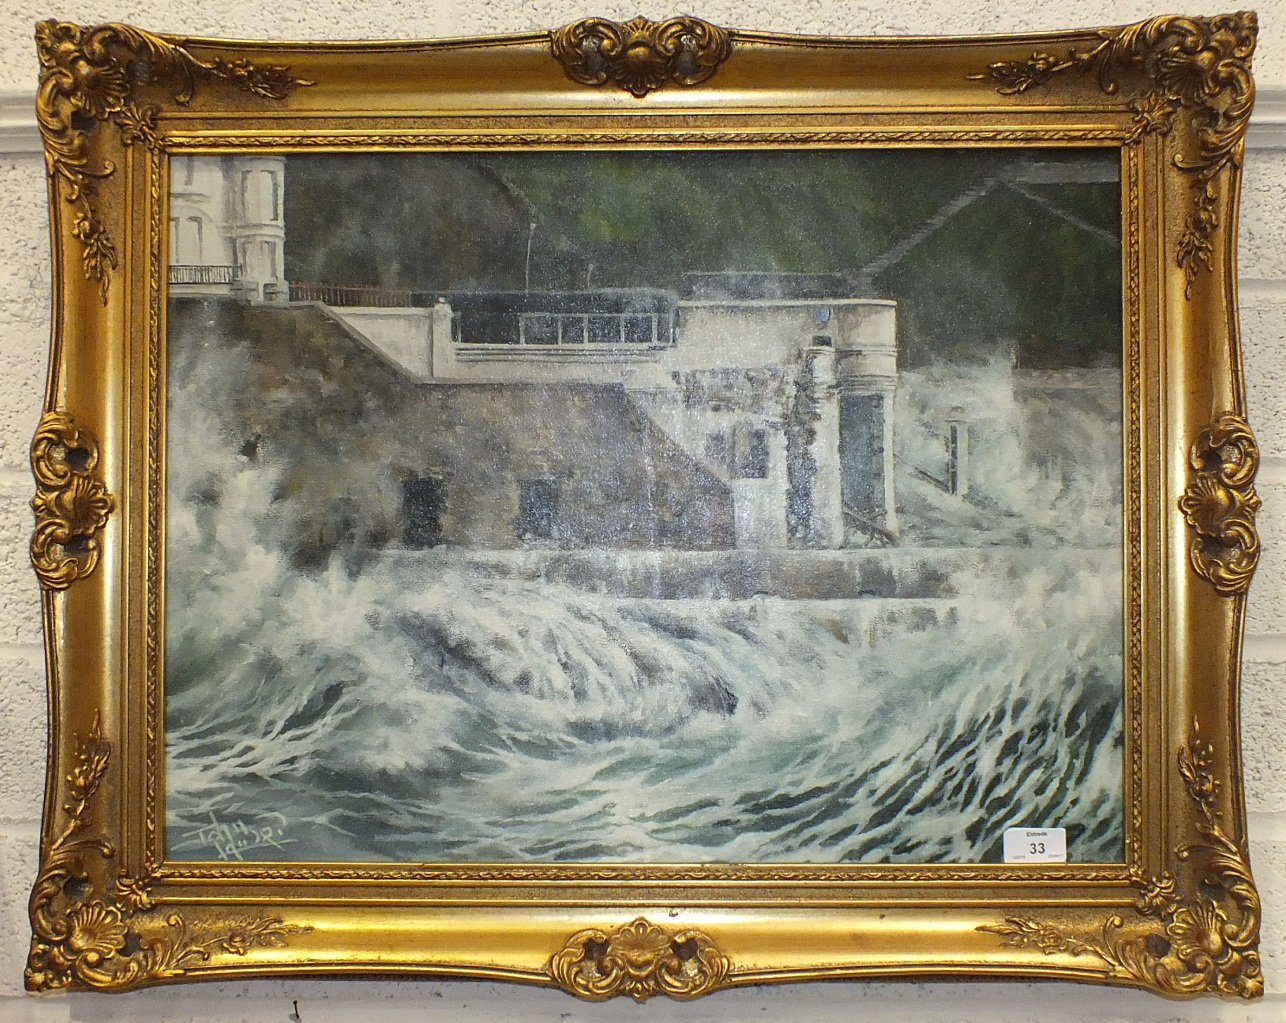 Lot 33 - John Lawer, 'Storm Abates West Hoe, Plymouth, January 25th 1990', a signed oil on canvas, titled